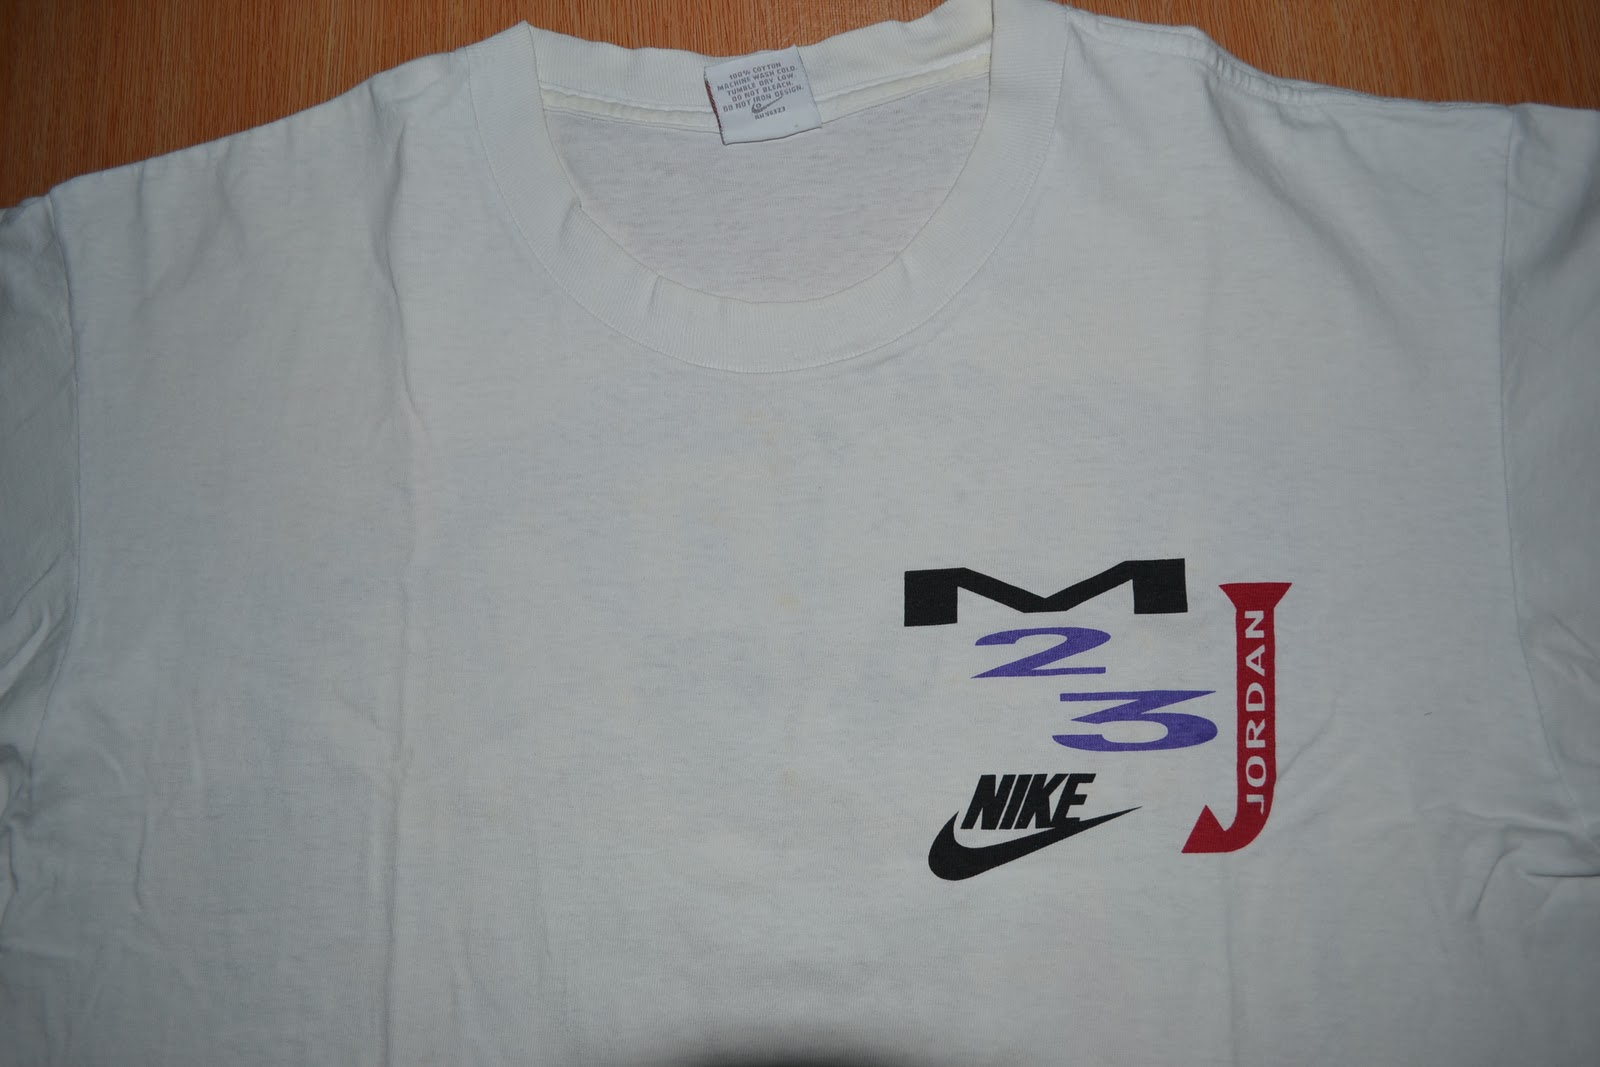 4819870552b Condition : A Tag : Nike grey tag. Color : White Description: pre-owned/  bundle/ original/ single stitch/ made in USA/ Micheal Jordan limited series